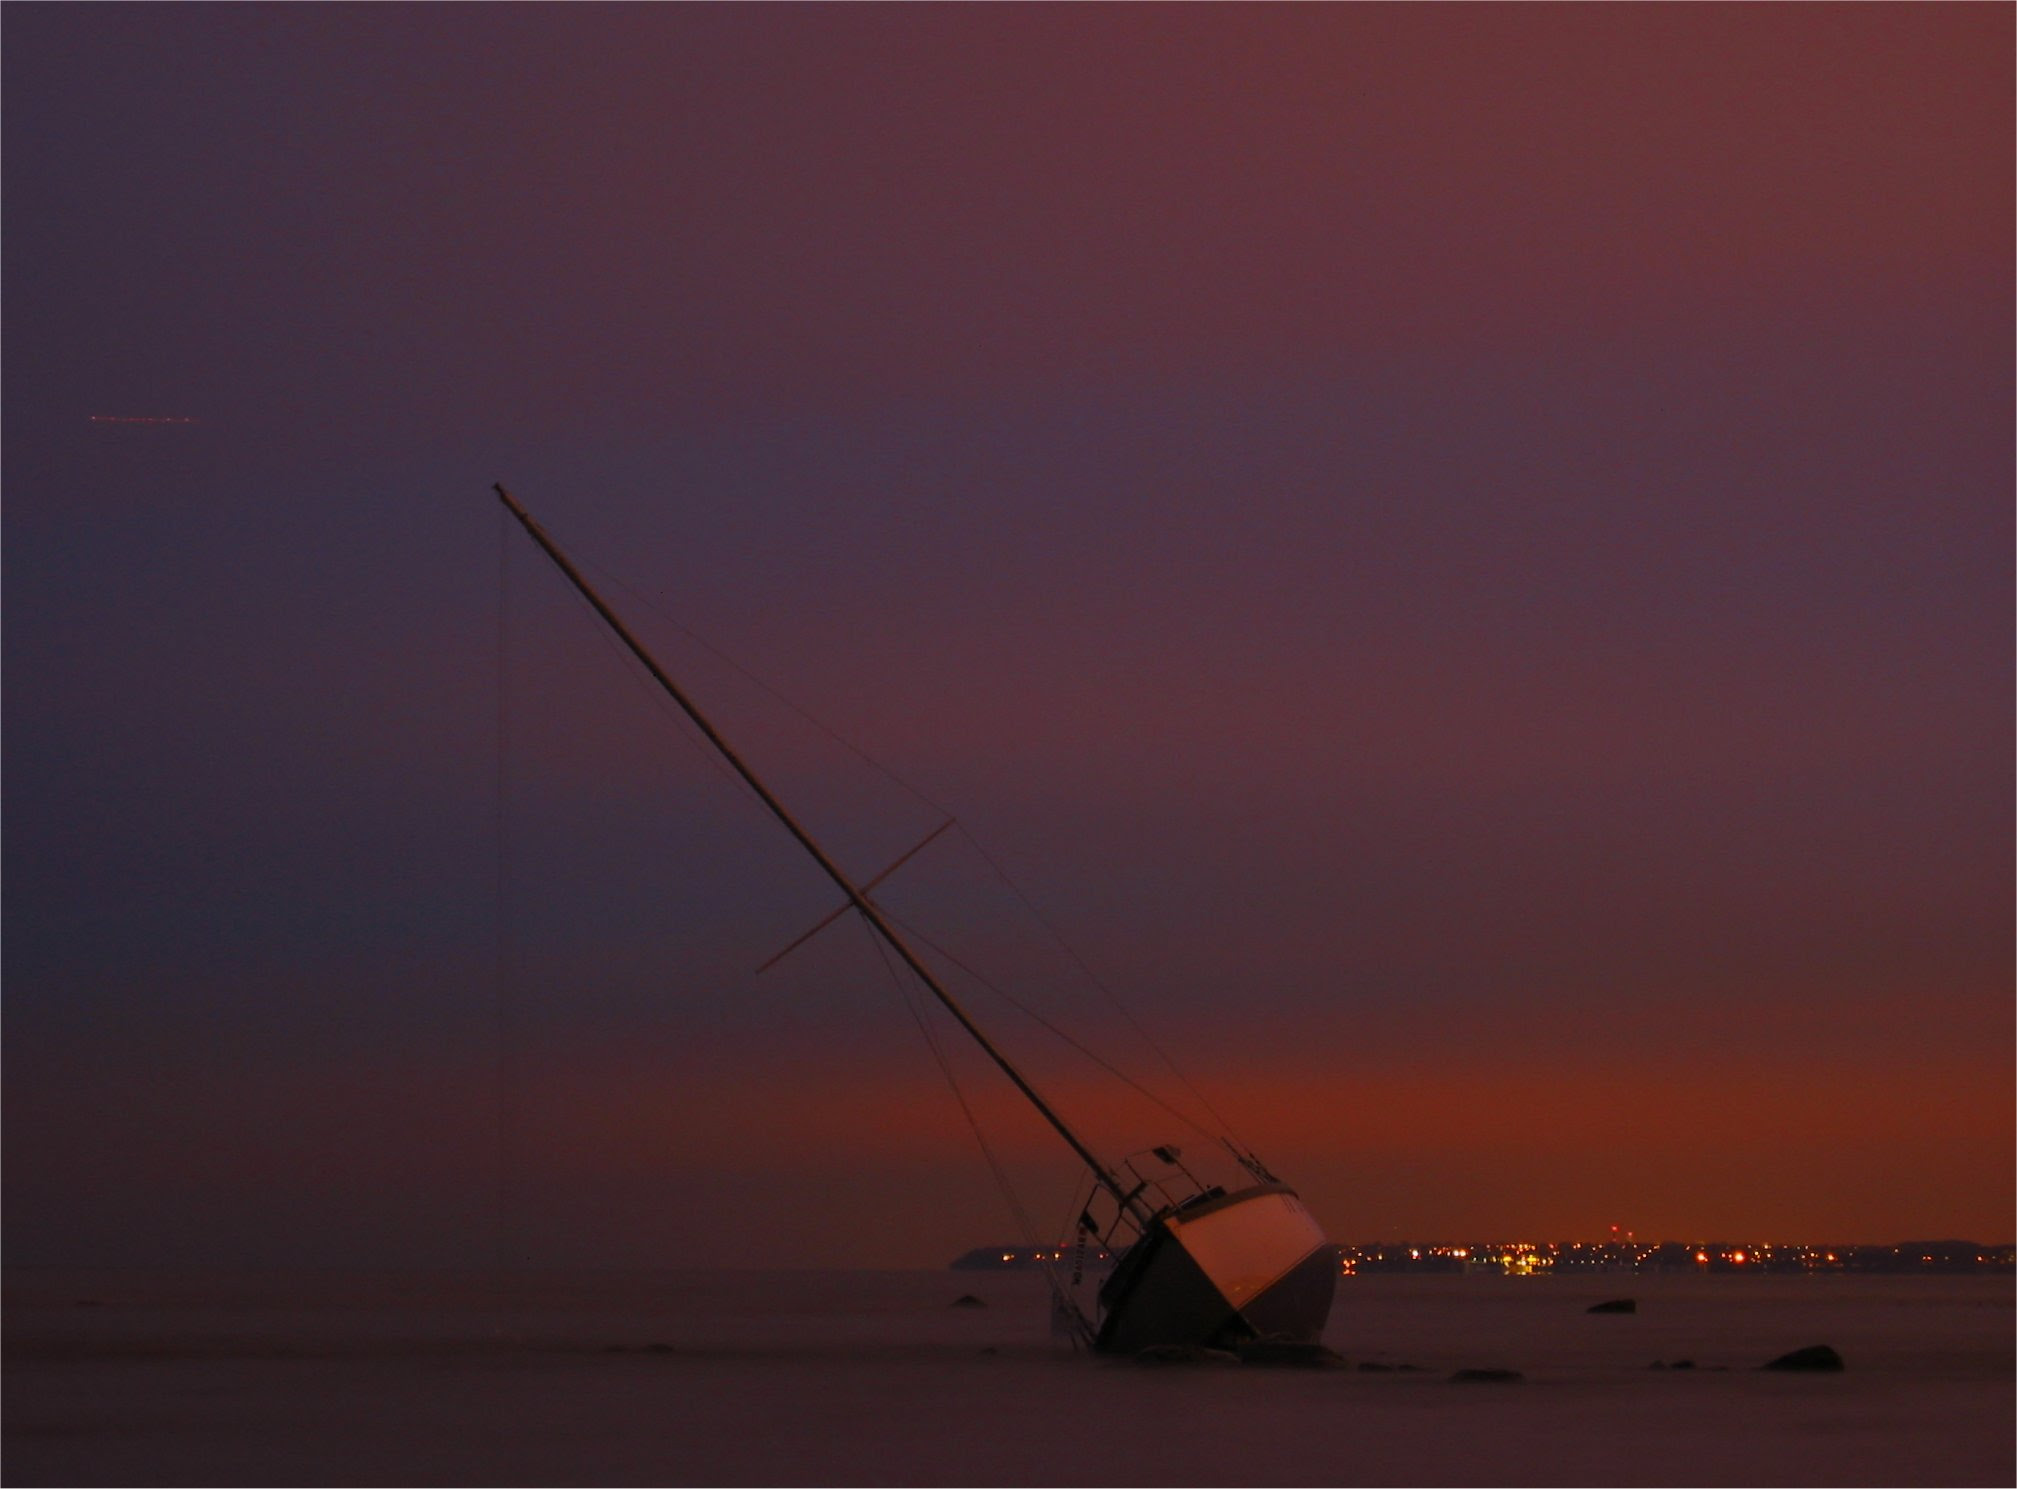 Milwaukee grounded sailboat at sunset - 12-03-2007 - soul-amp.com